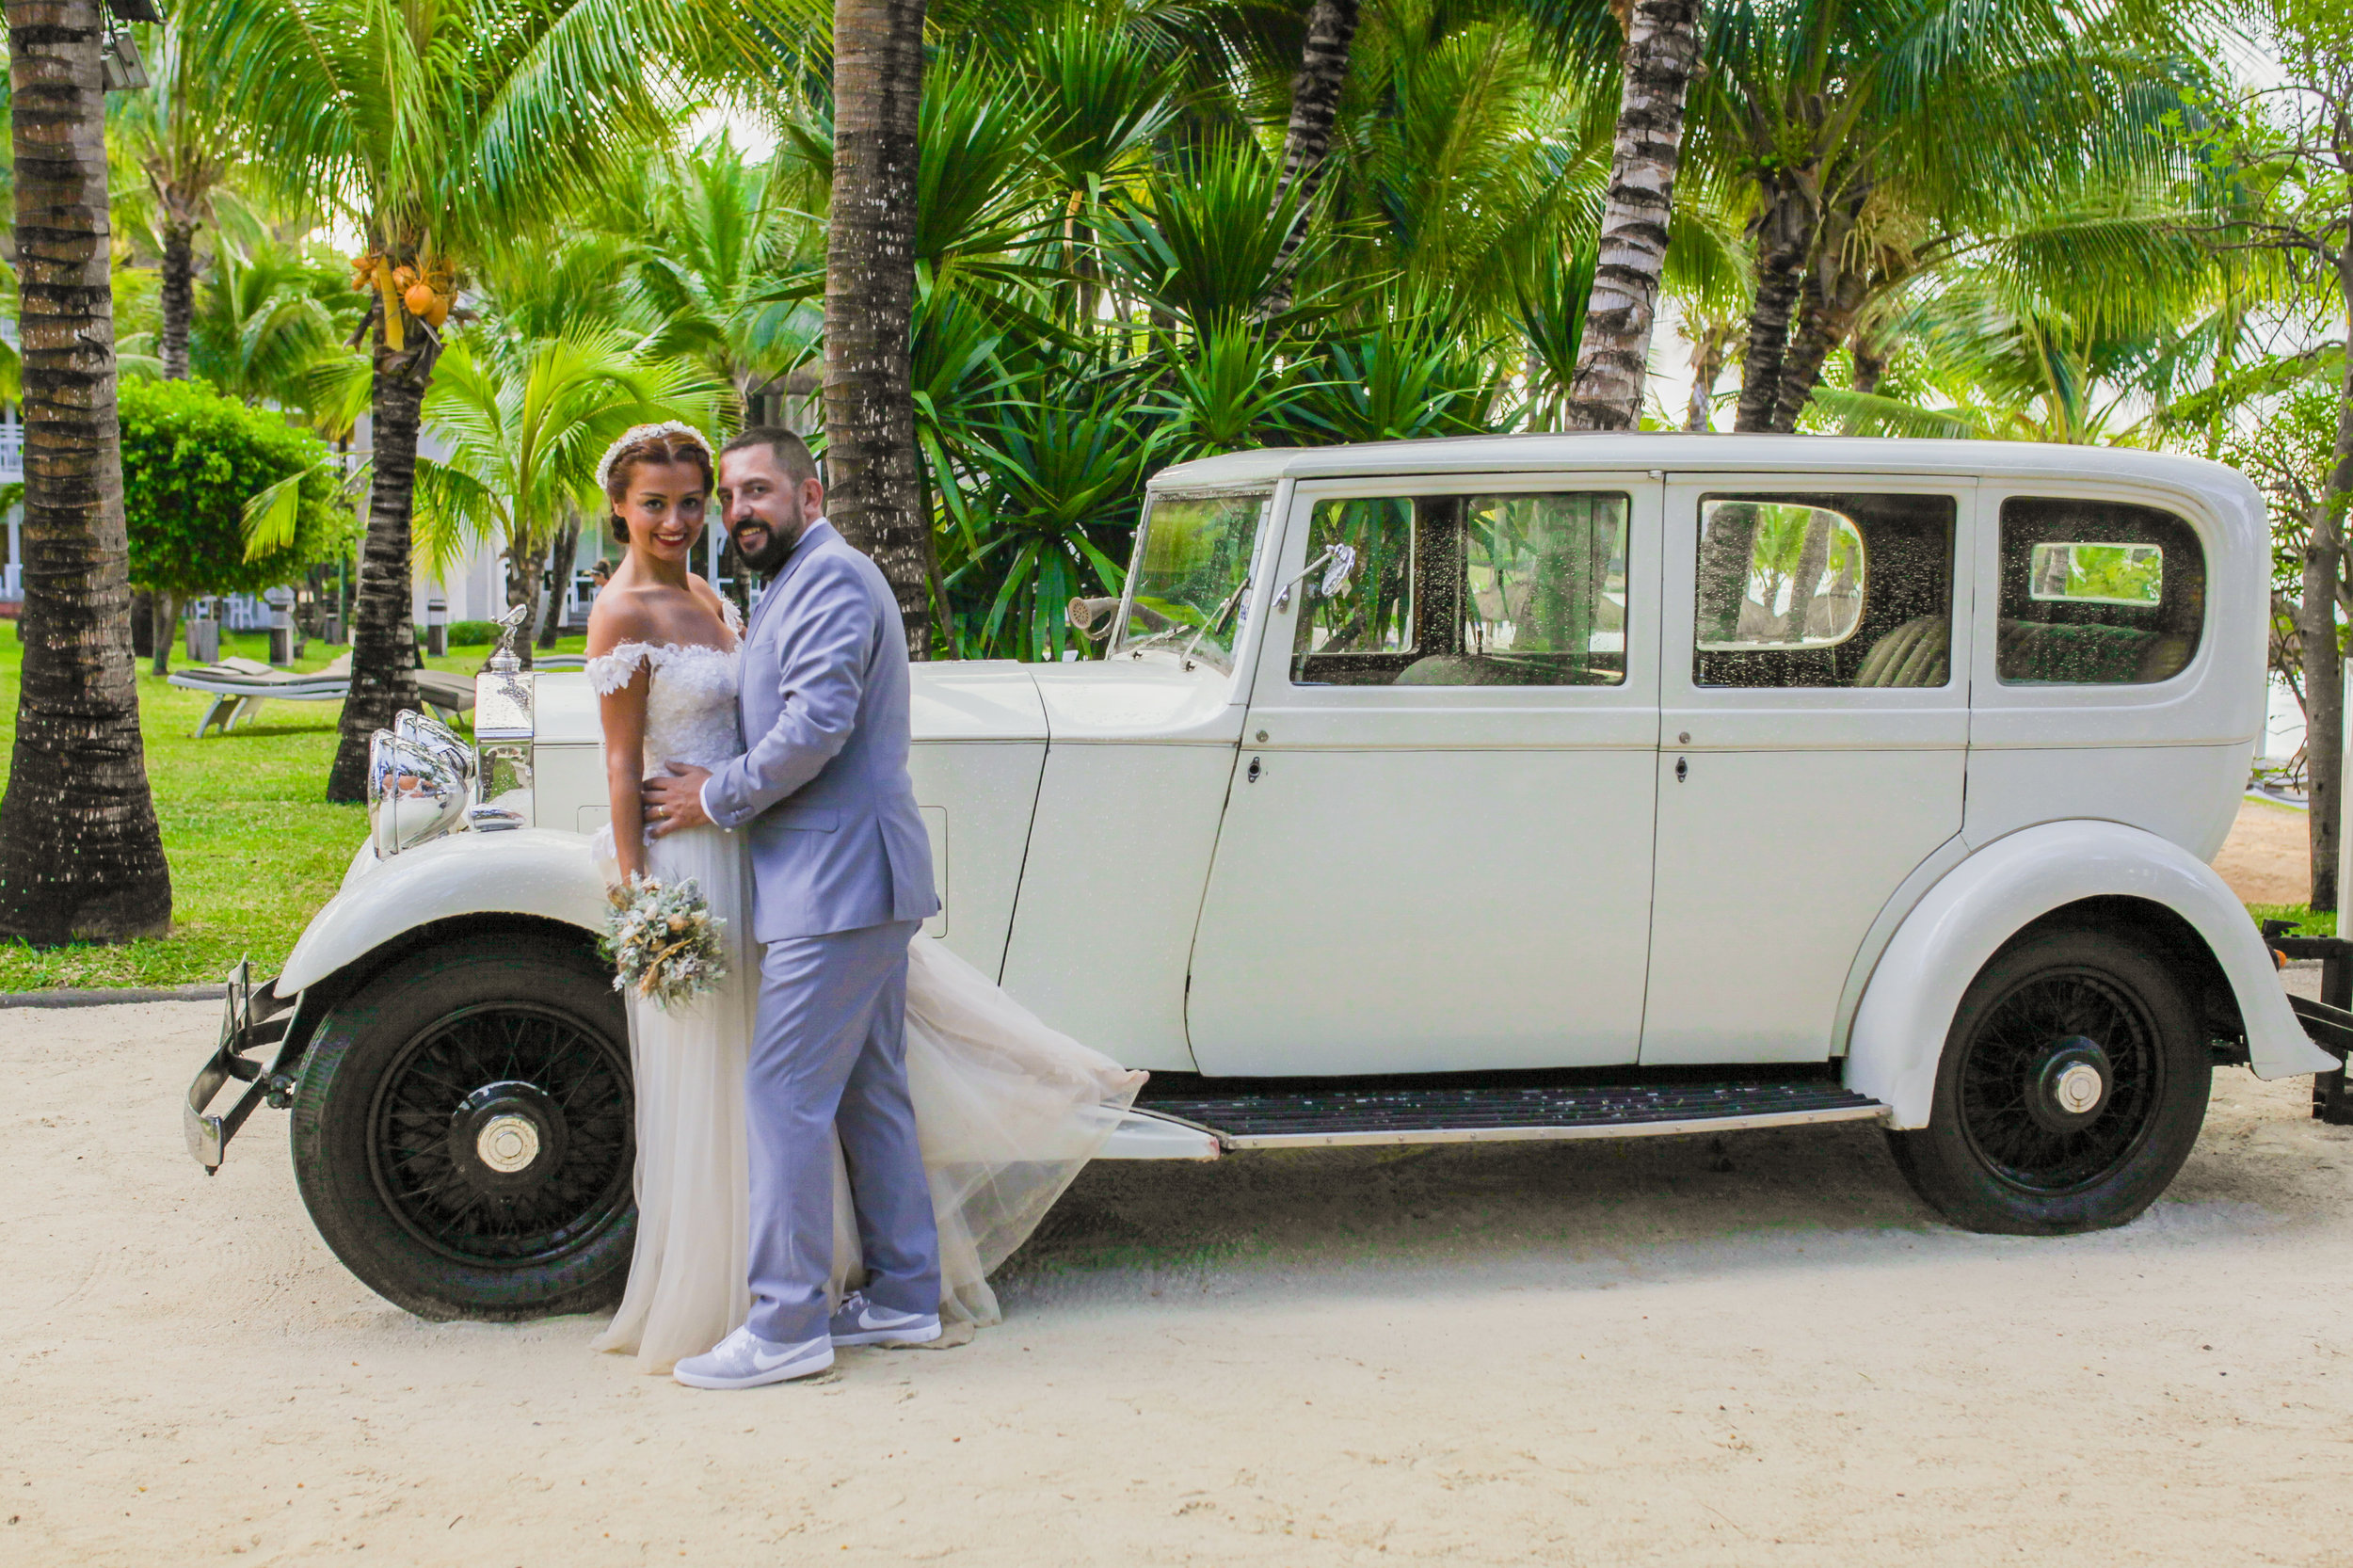 Married couple posing with vintage car at LUX belle mare